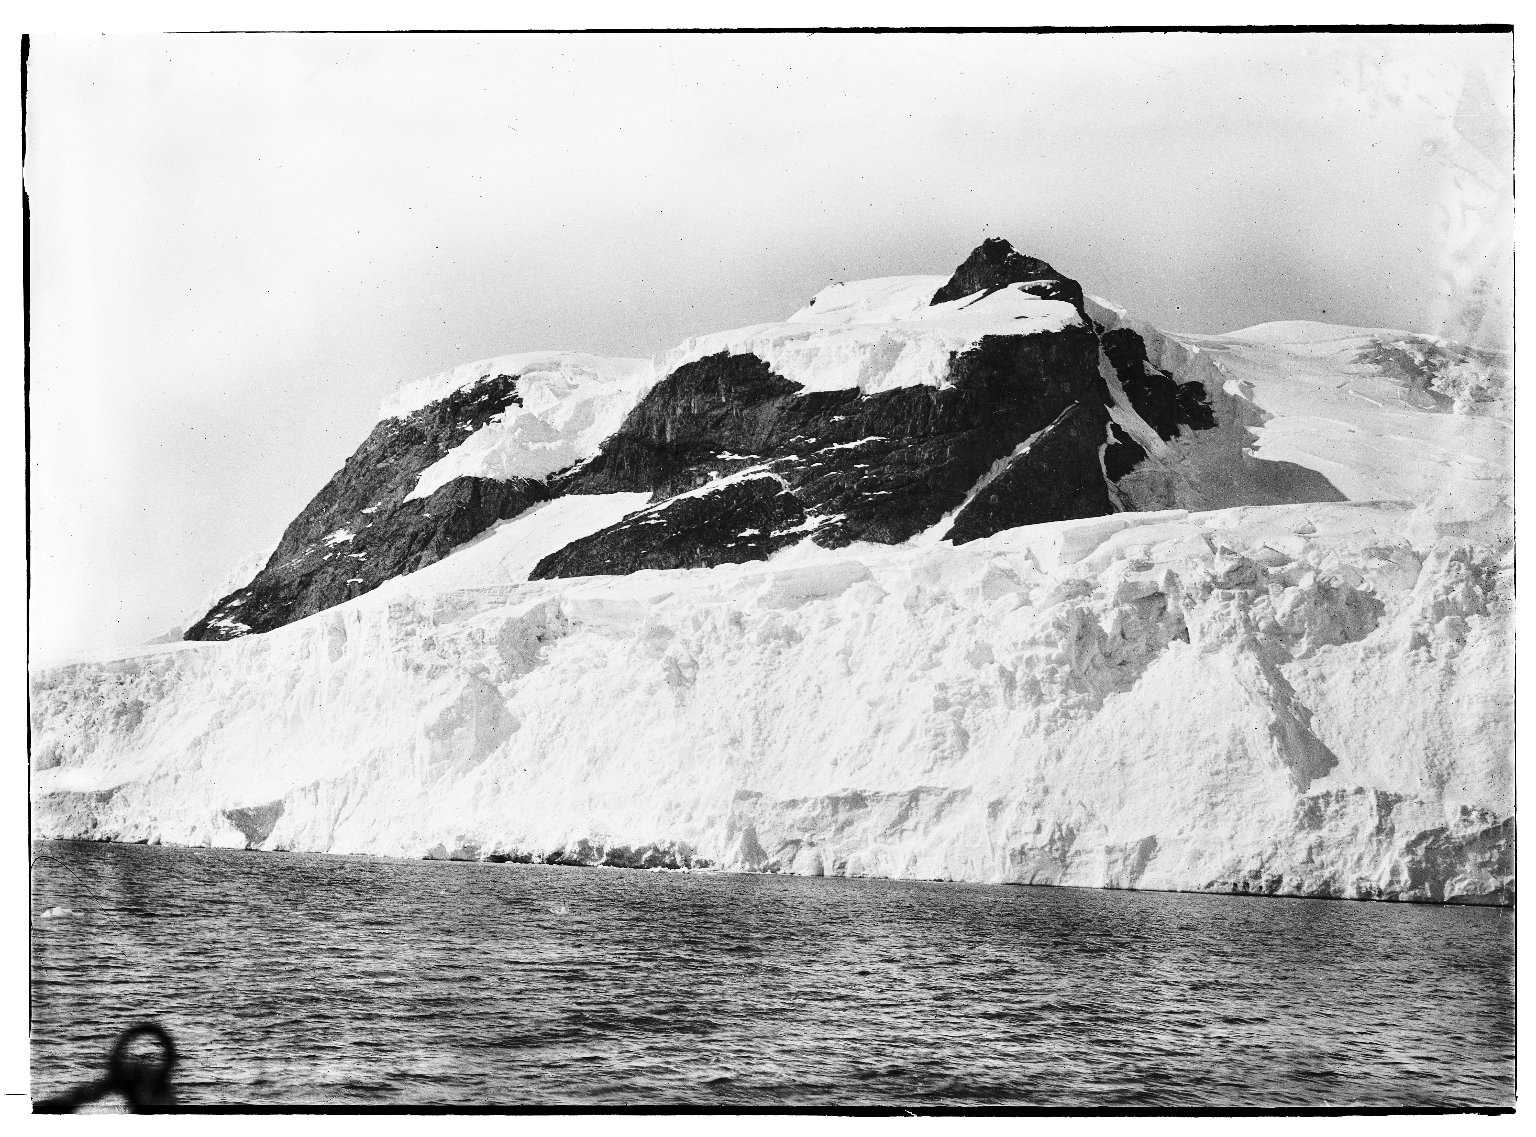 Prospecting Cruise to South Georgia and Antartica, 1913-14, P.113